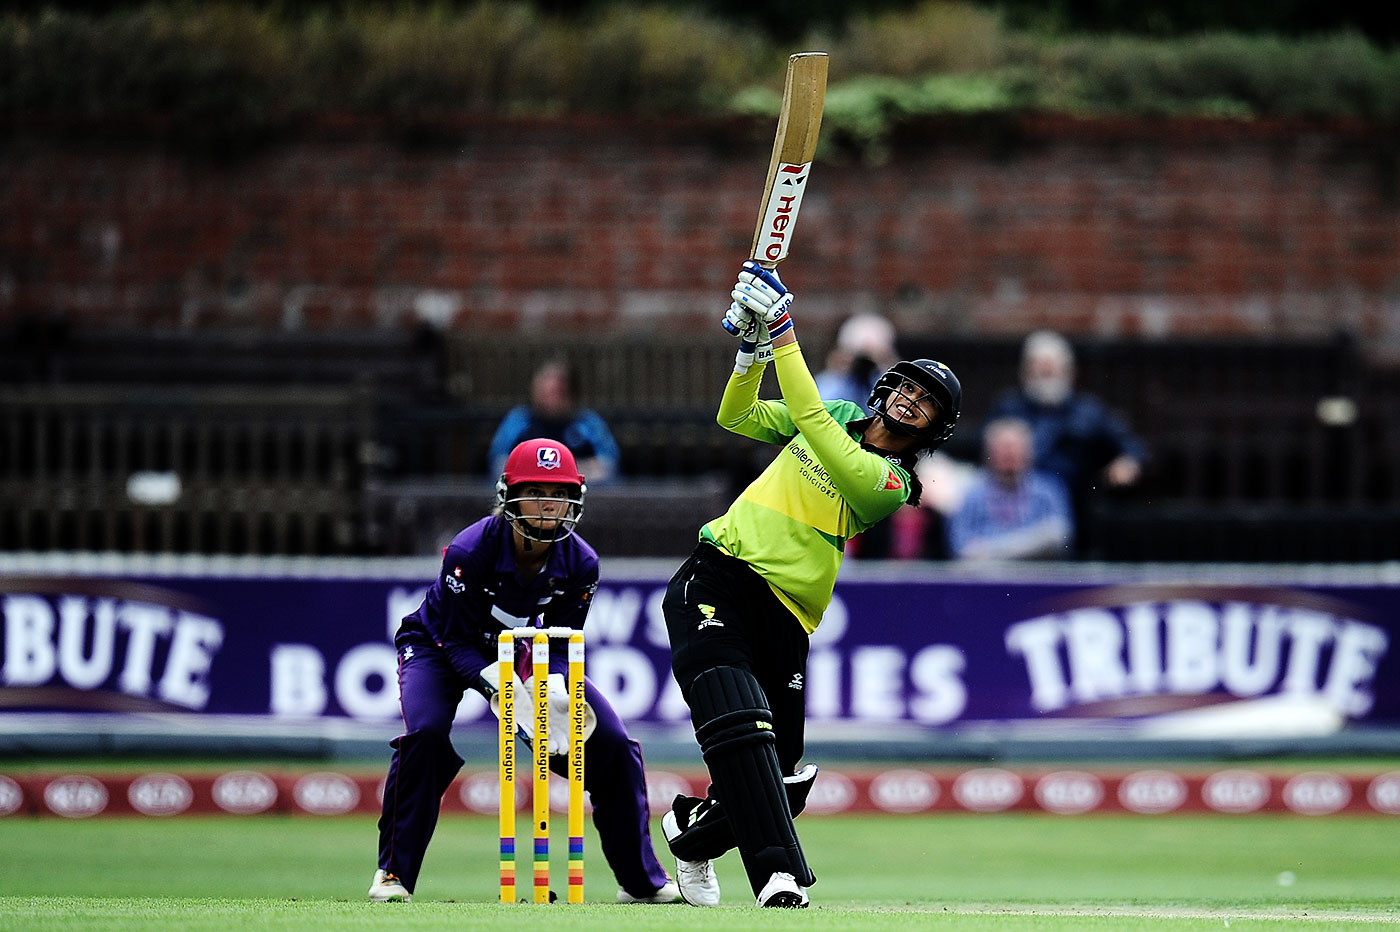 Putting the storm in Western Storm: Mandhana made 421 runs at a strike rate of over 174 in the last KSL